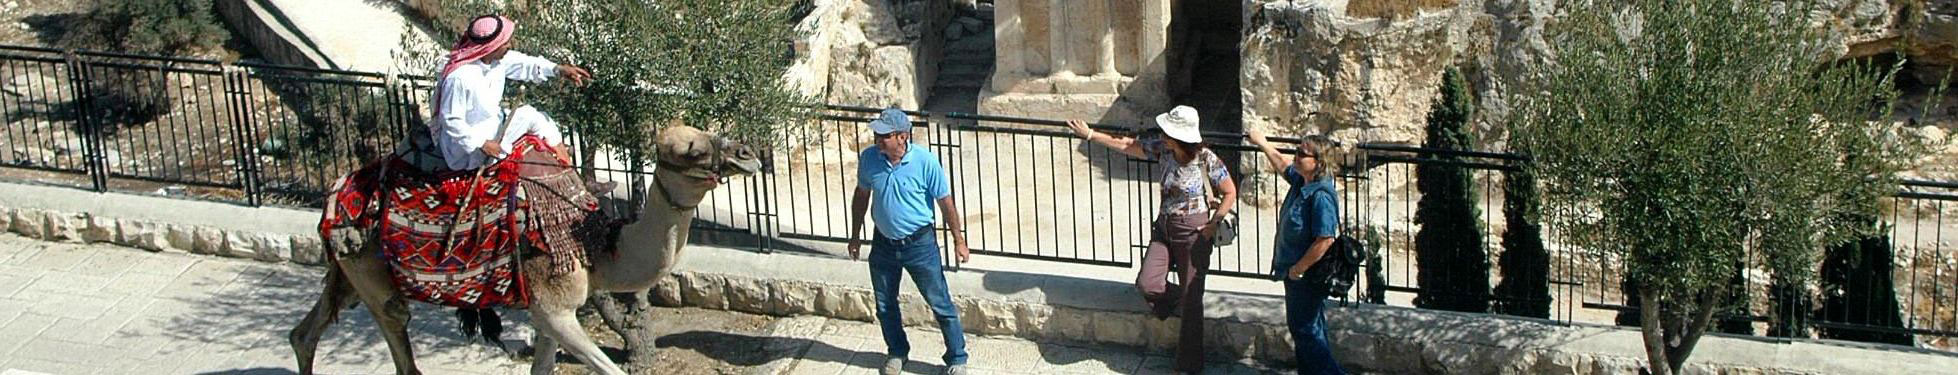 Jerusalem Guided City Tours (C) Tour Plan Israel